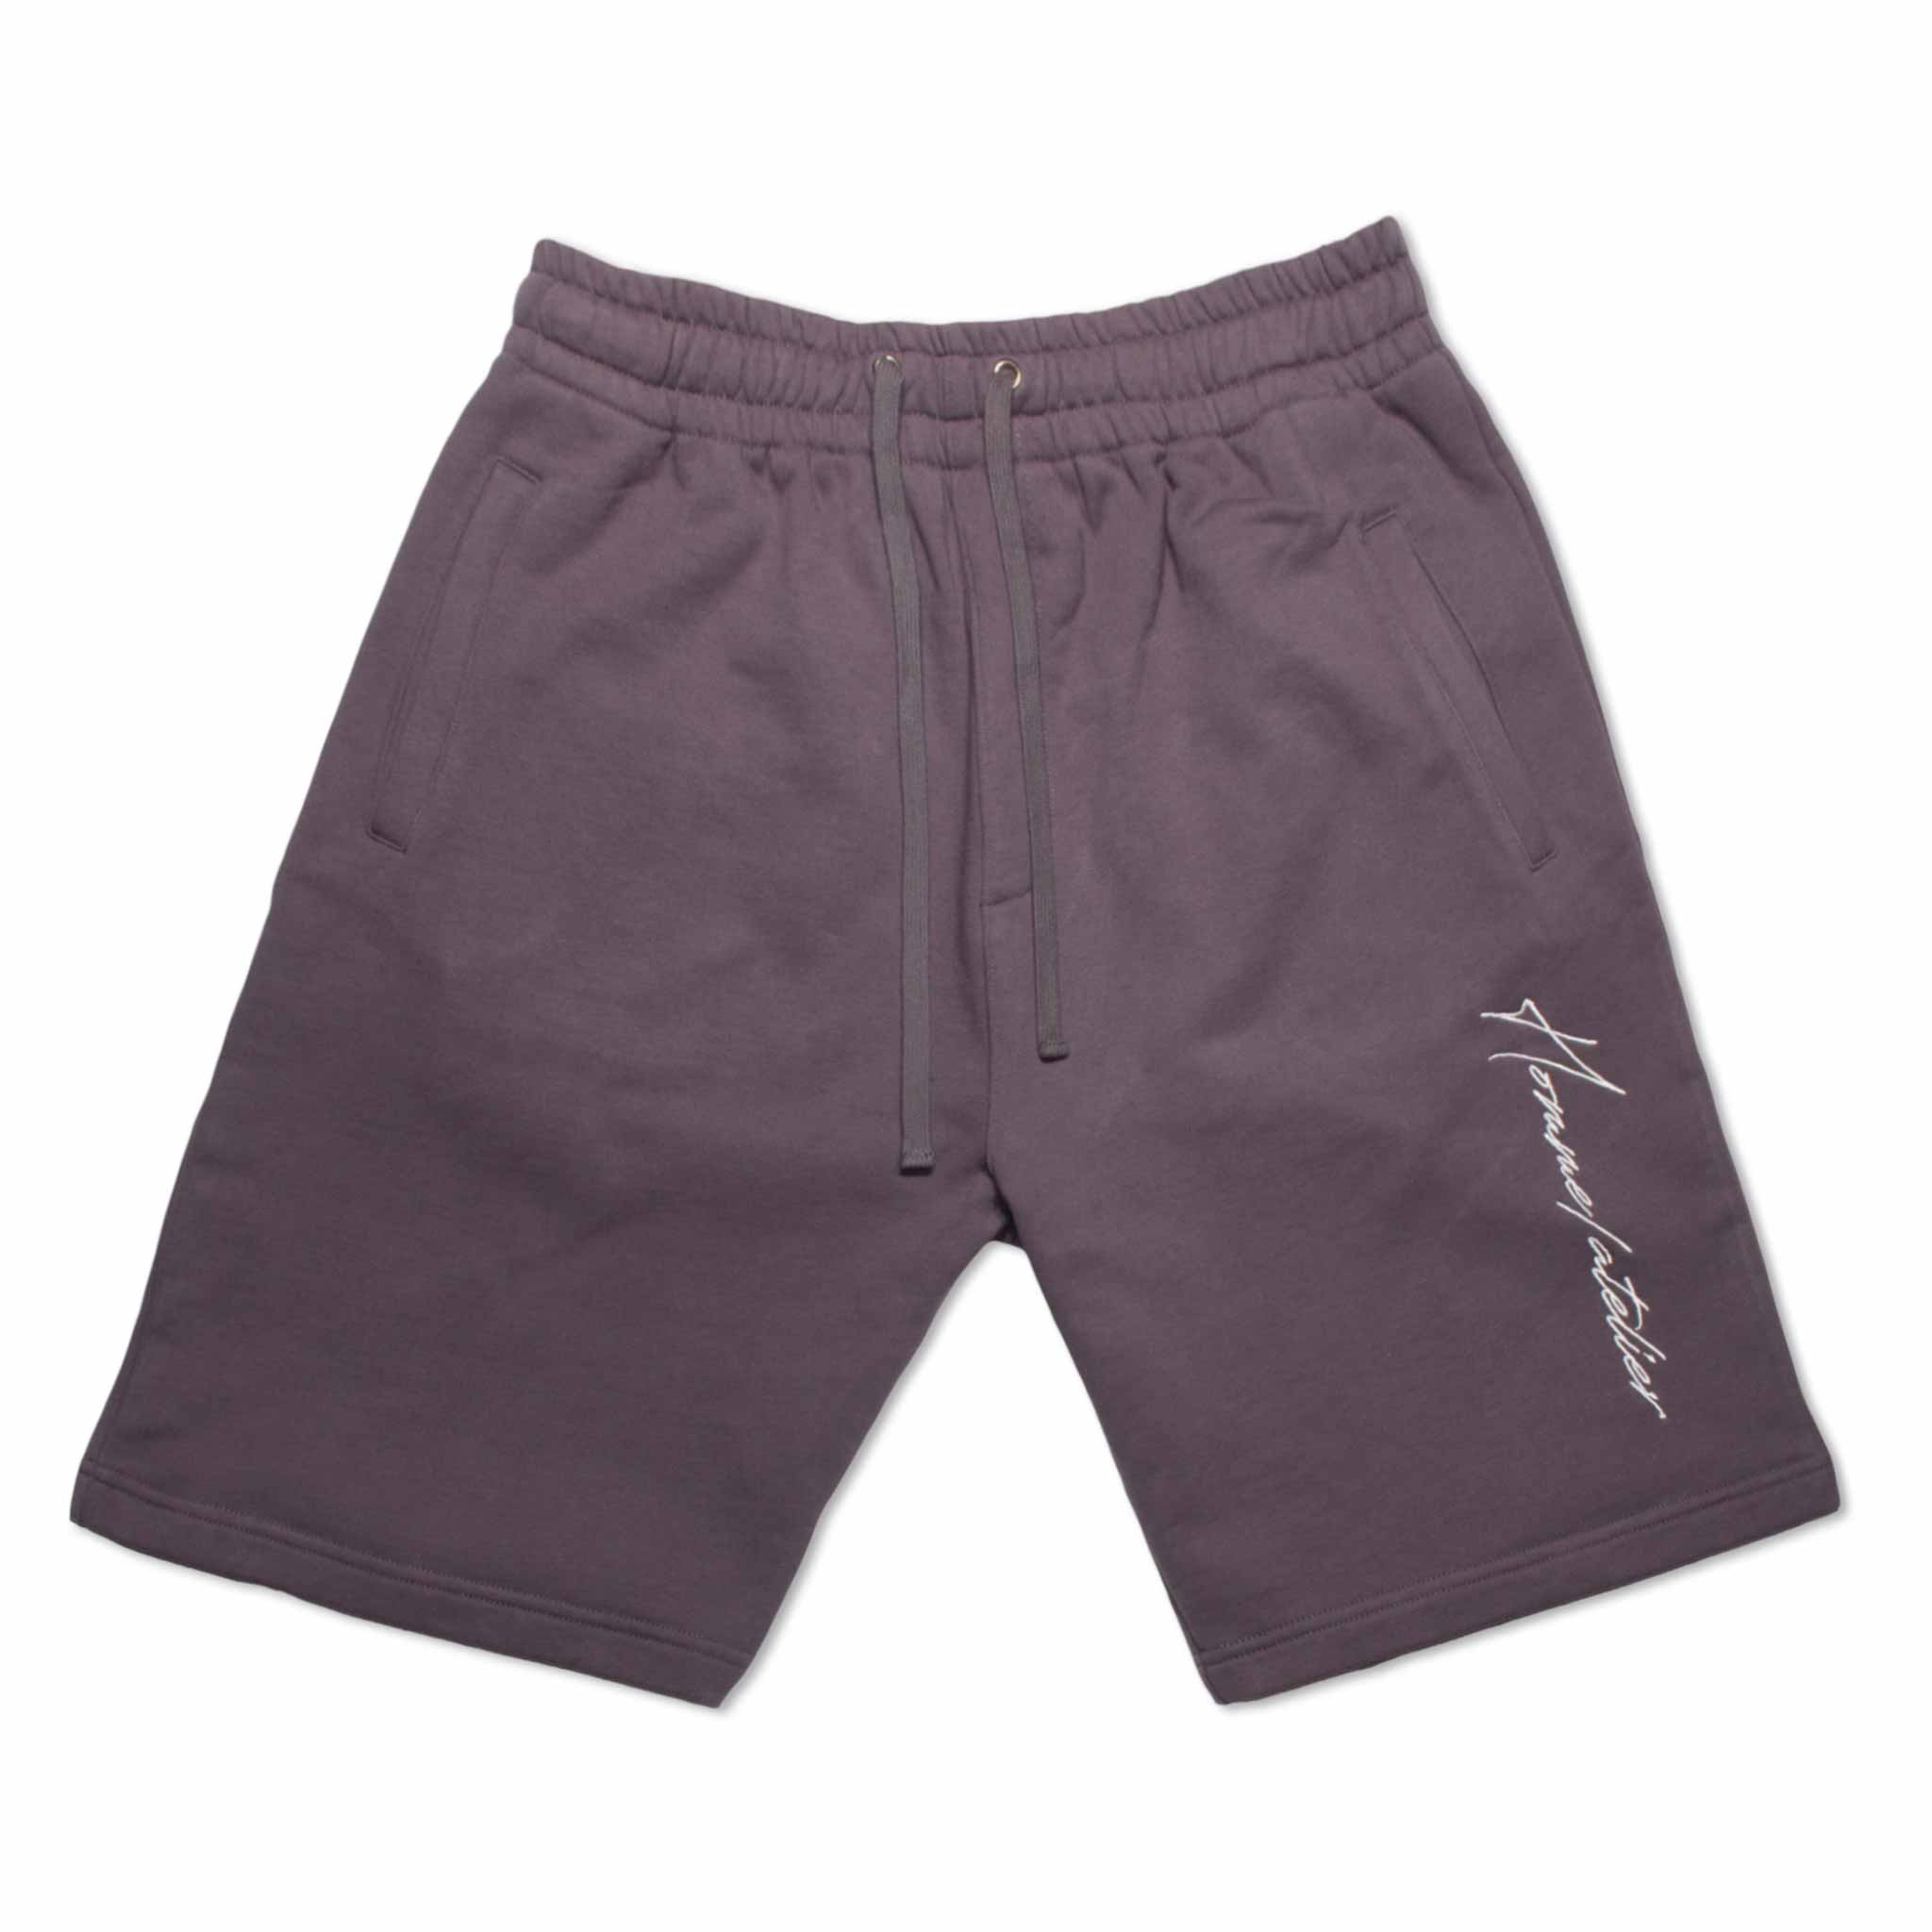 HOMME+ Embroidery Shorts Charcoal